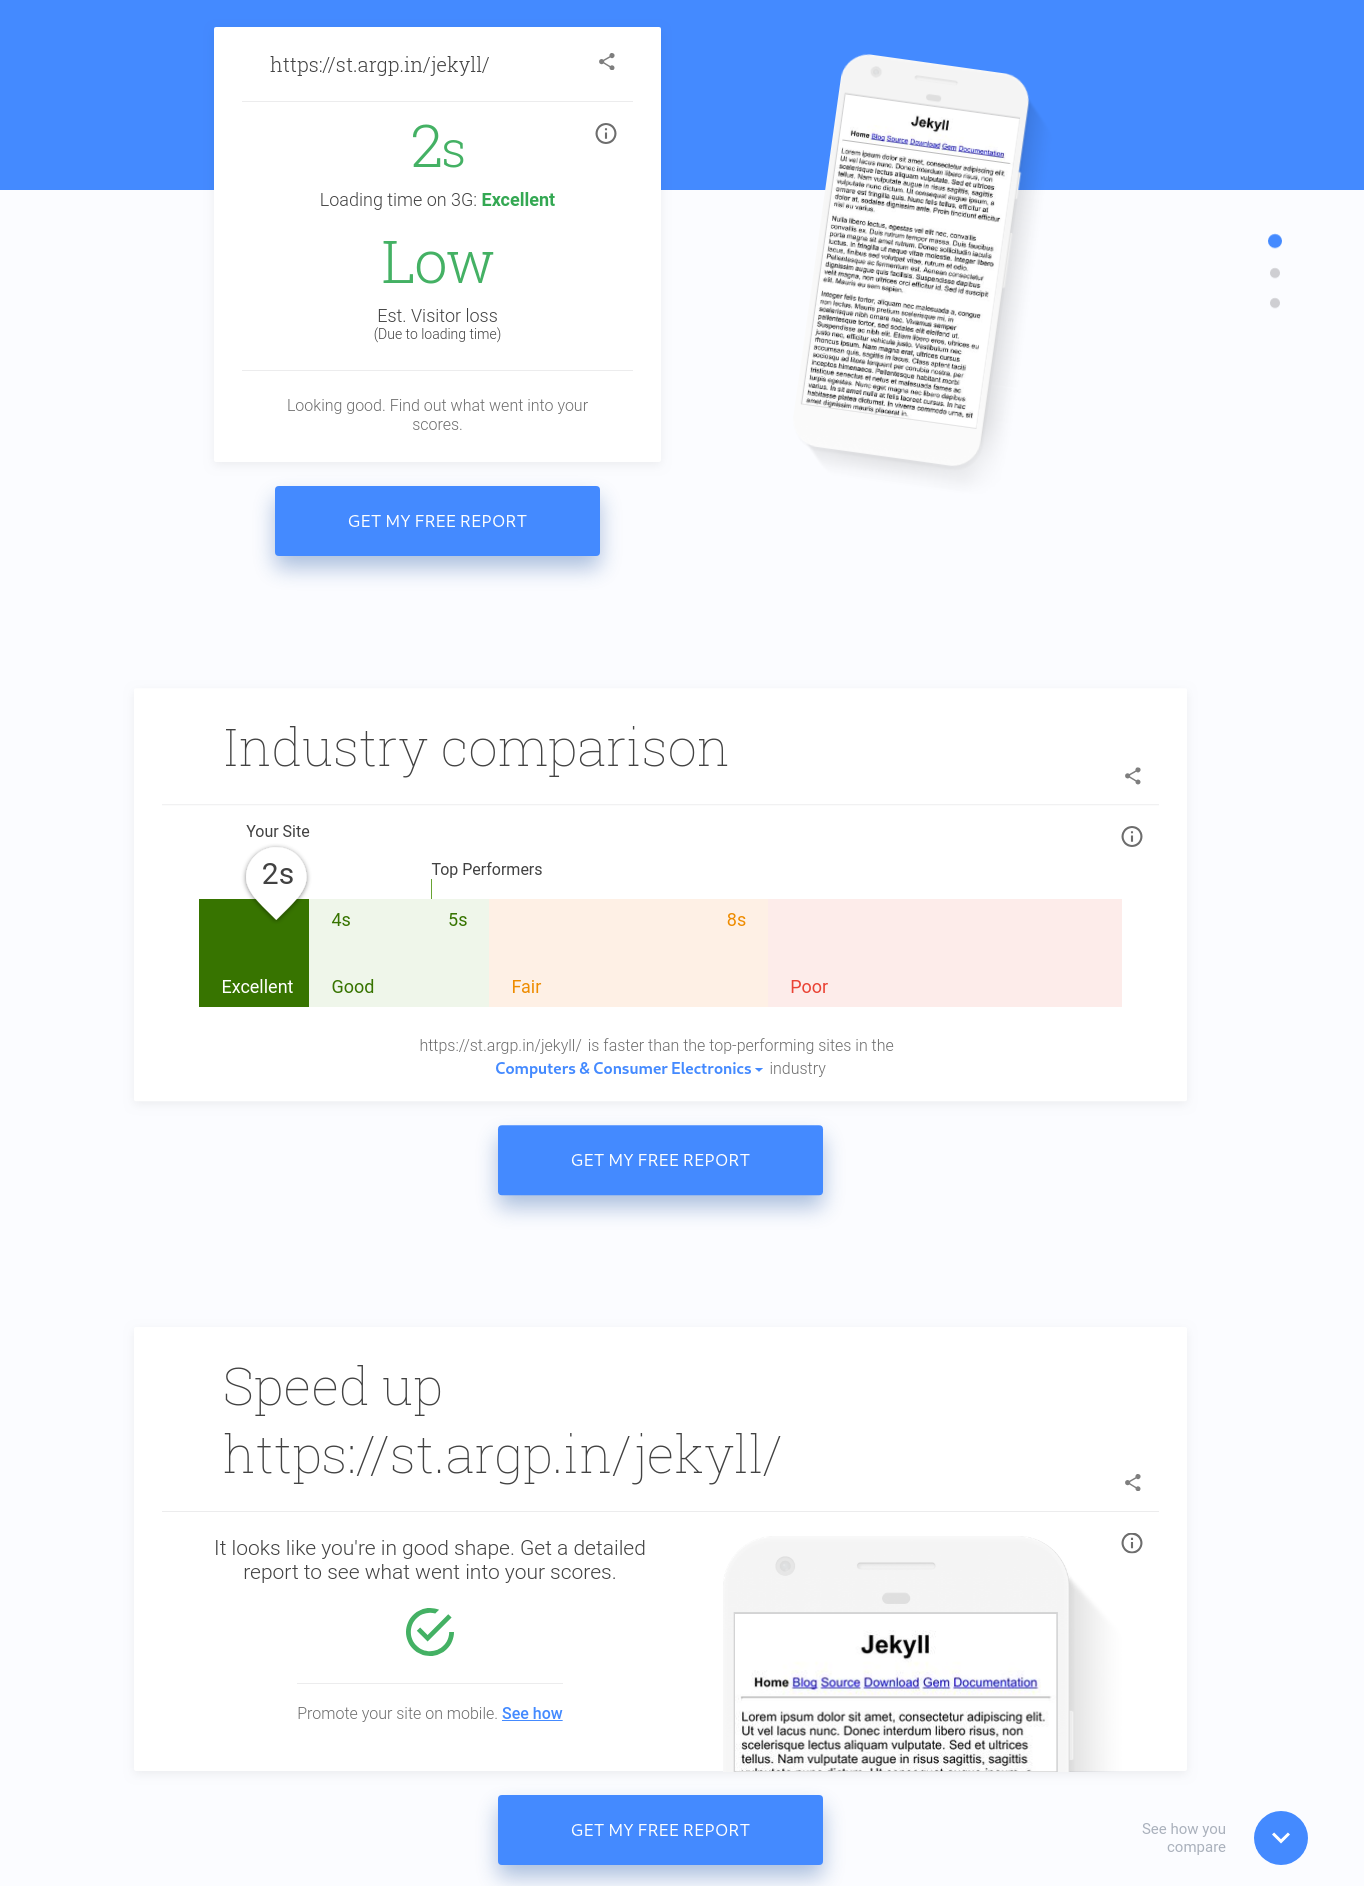 Google Mobile-Friendly Test Results